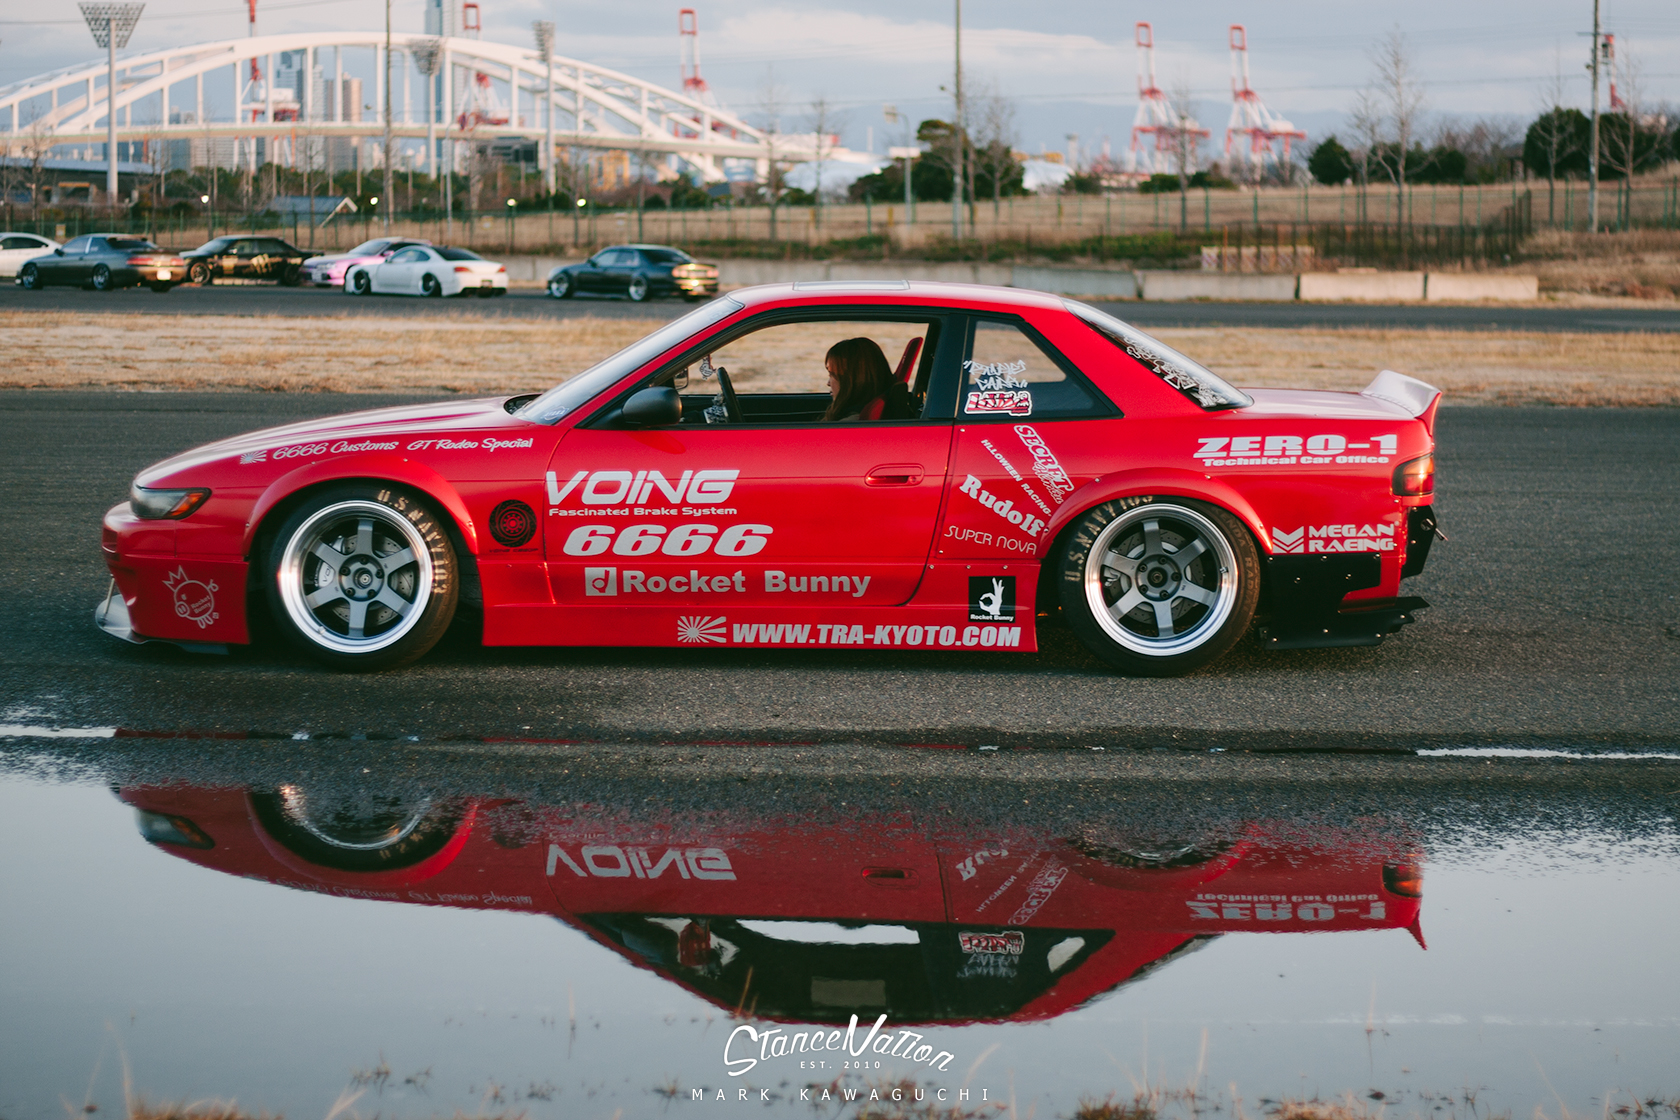 rocket-bunny-nissan-japan-6666-customs-S13-7